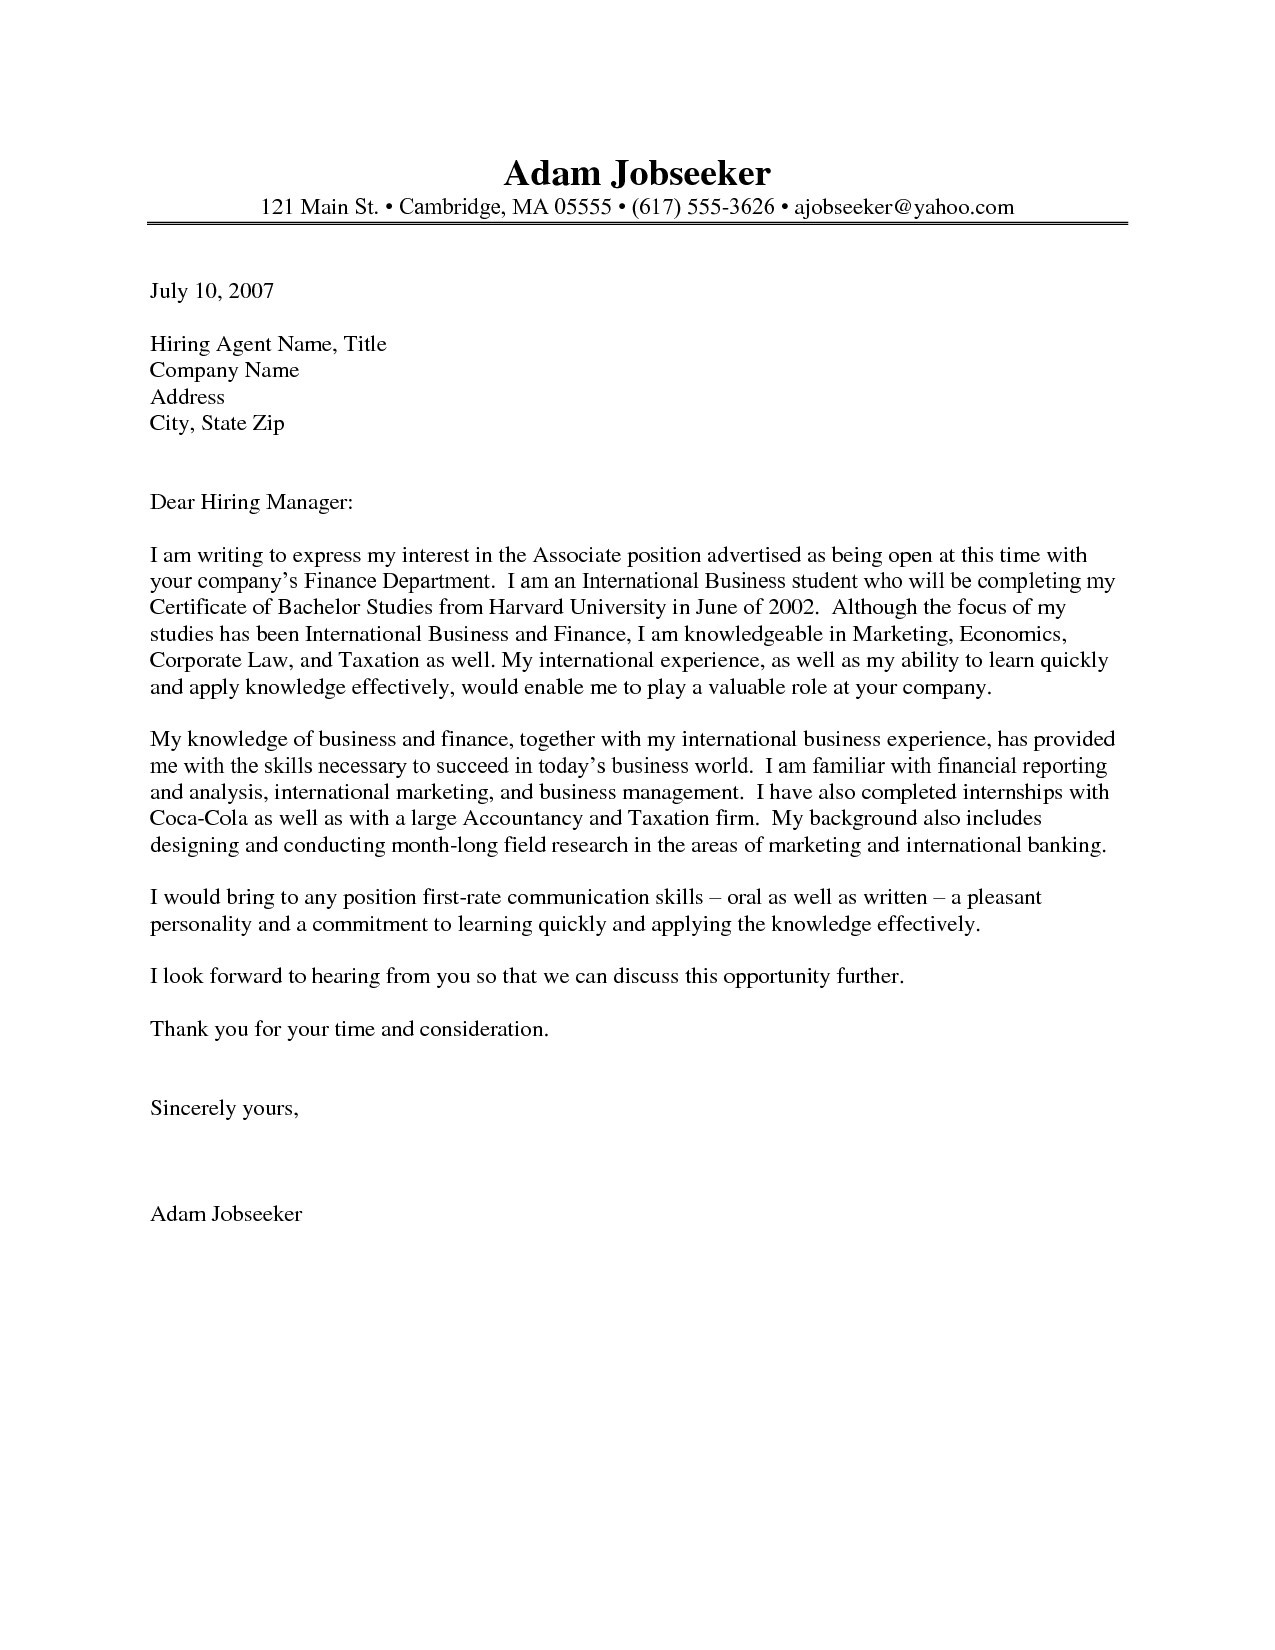 Professional Letter Of Recommendation Template - Cover Letter Examples for Internship Fresh Cover Letter Examples for